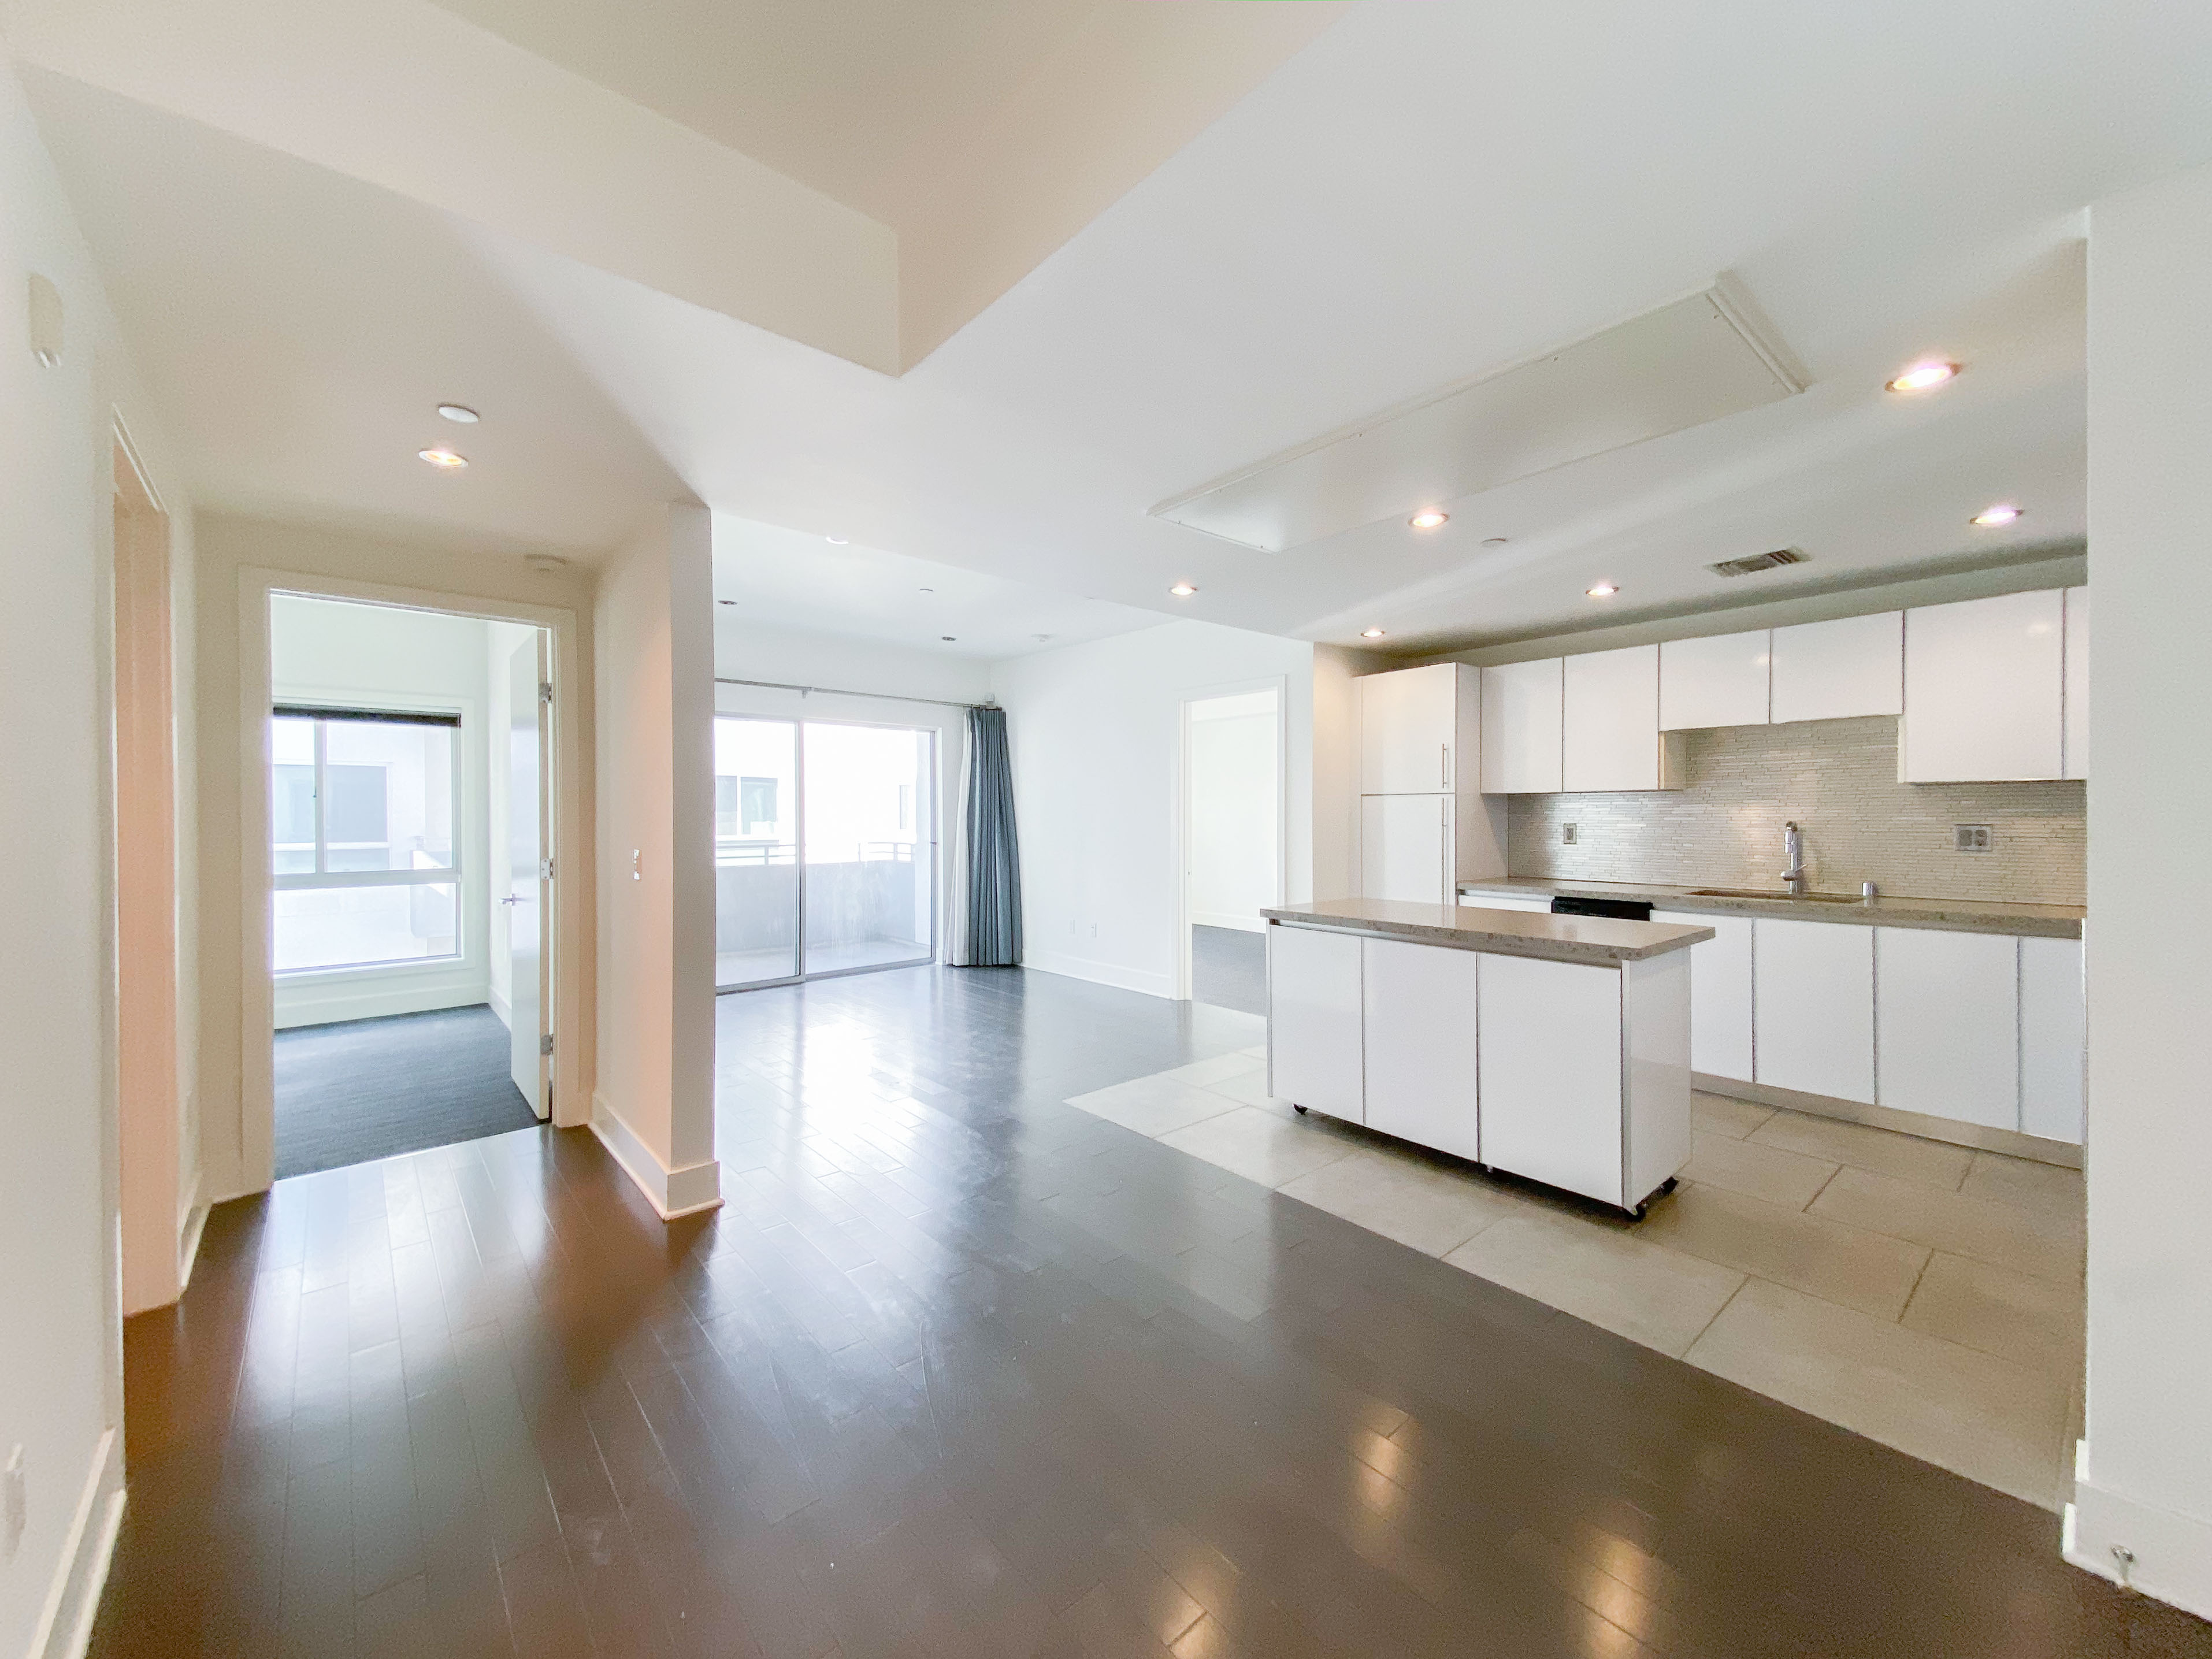 2BD Sawtelle Condo with Balcony | Washer / Dryer in Unit | Amazing Location | Central Heat & A/C